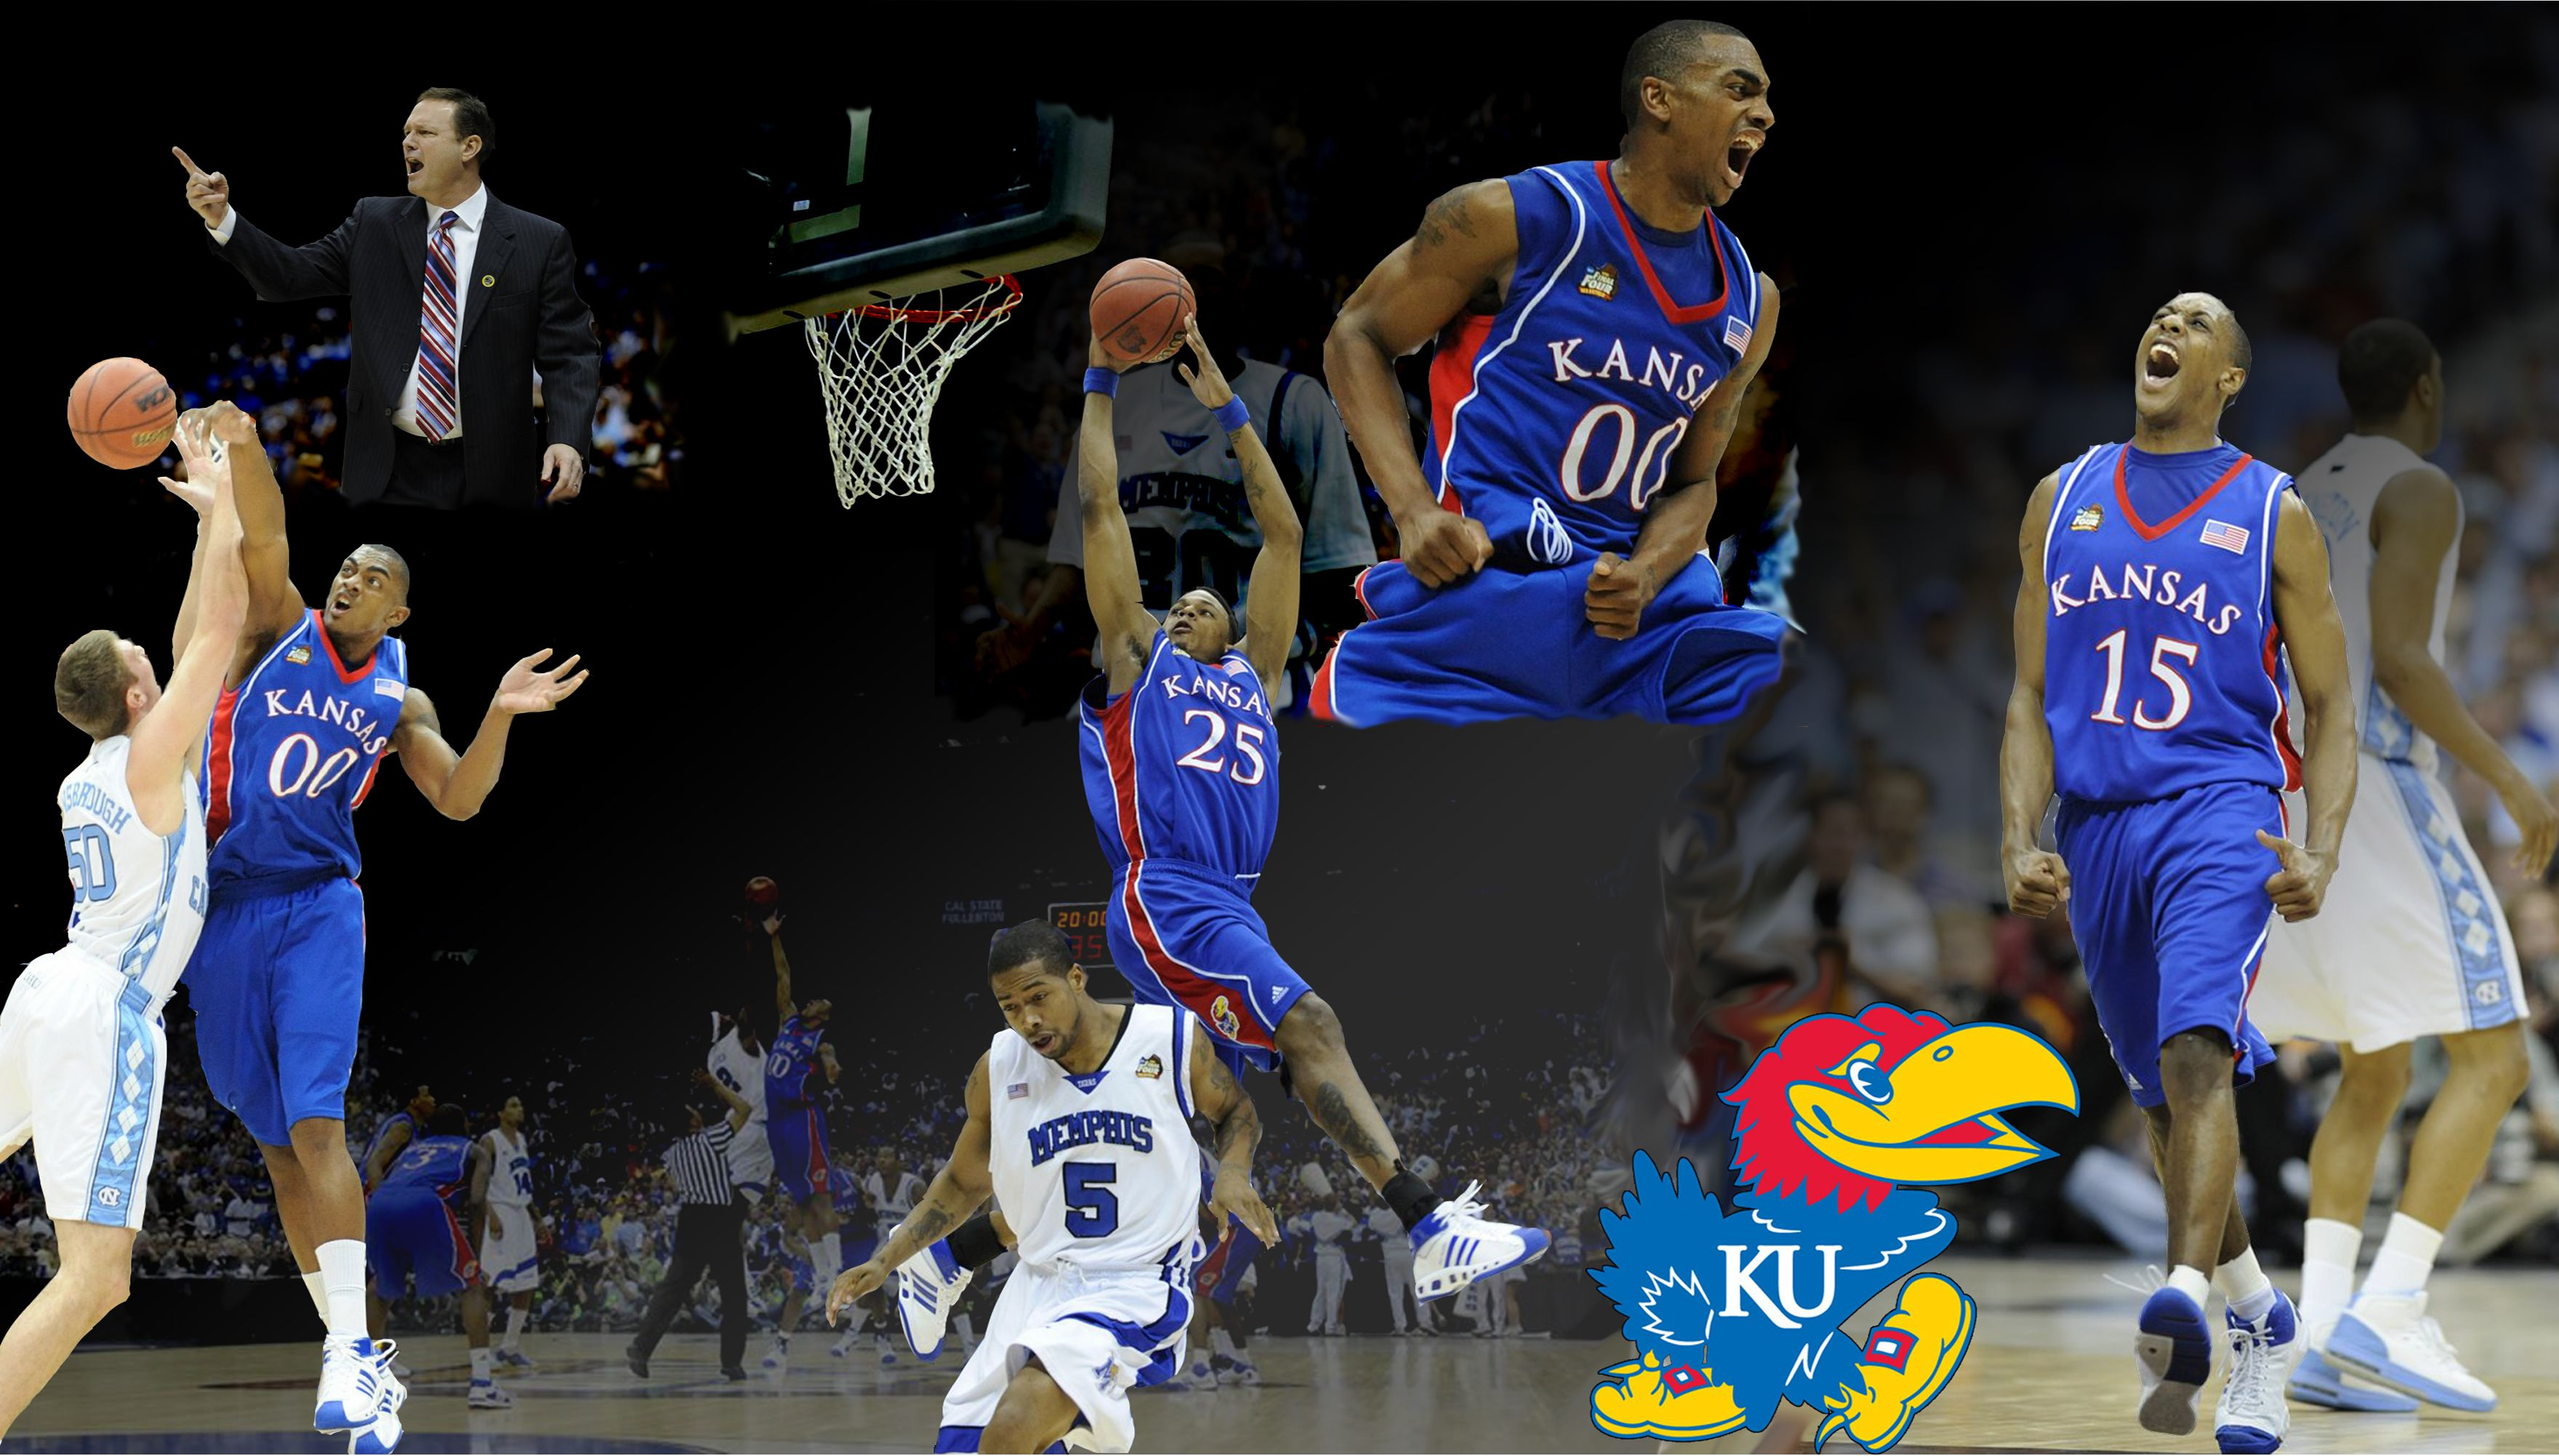 Kansas Basketball live streaming free online. https